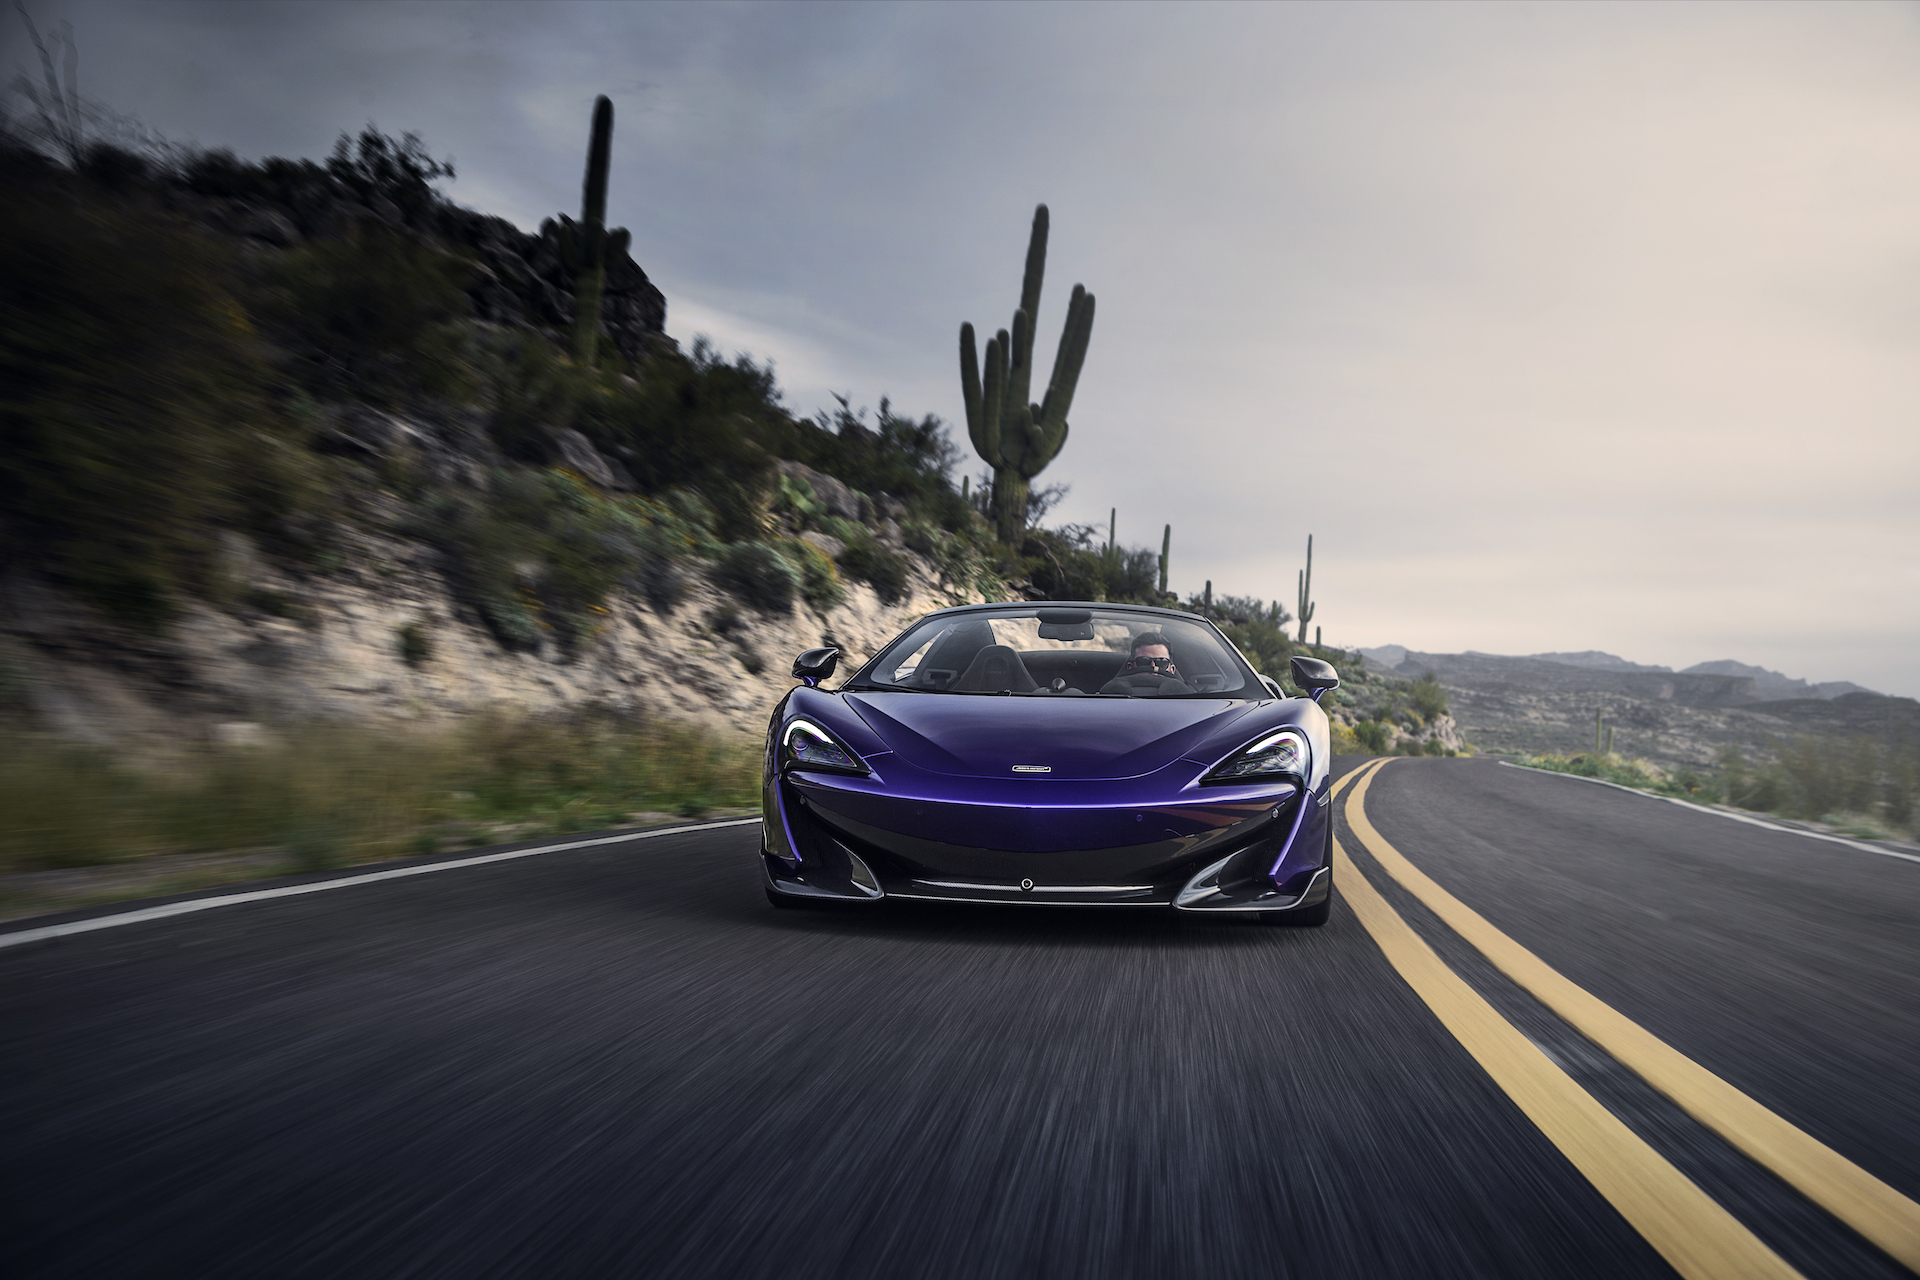 2020 McLaren 600LT Spider (Color: Lantana Purple) Front Wallpaper (5)